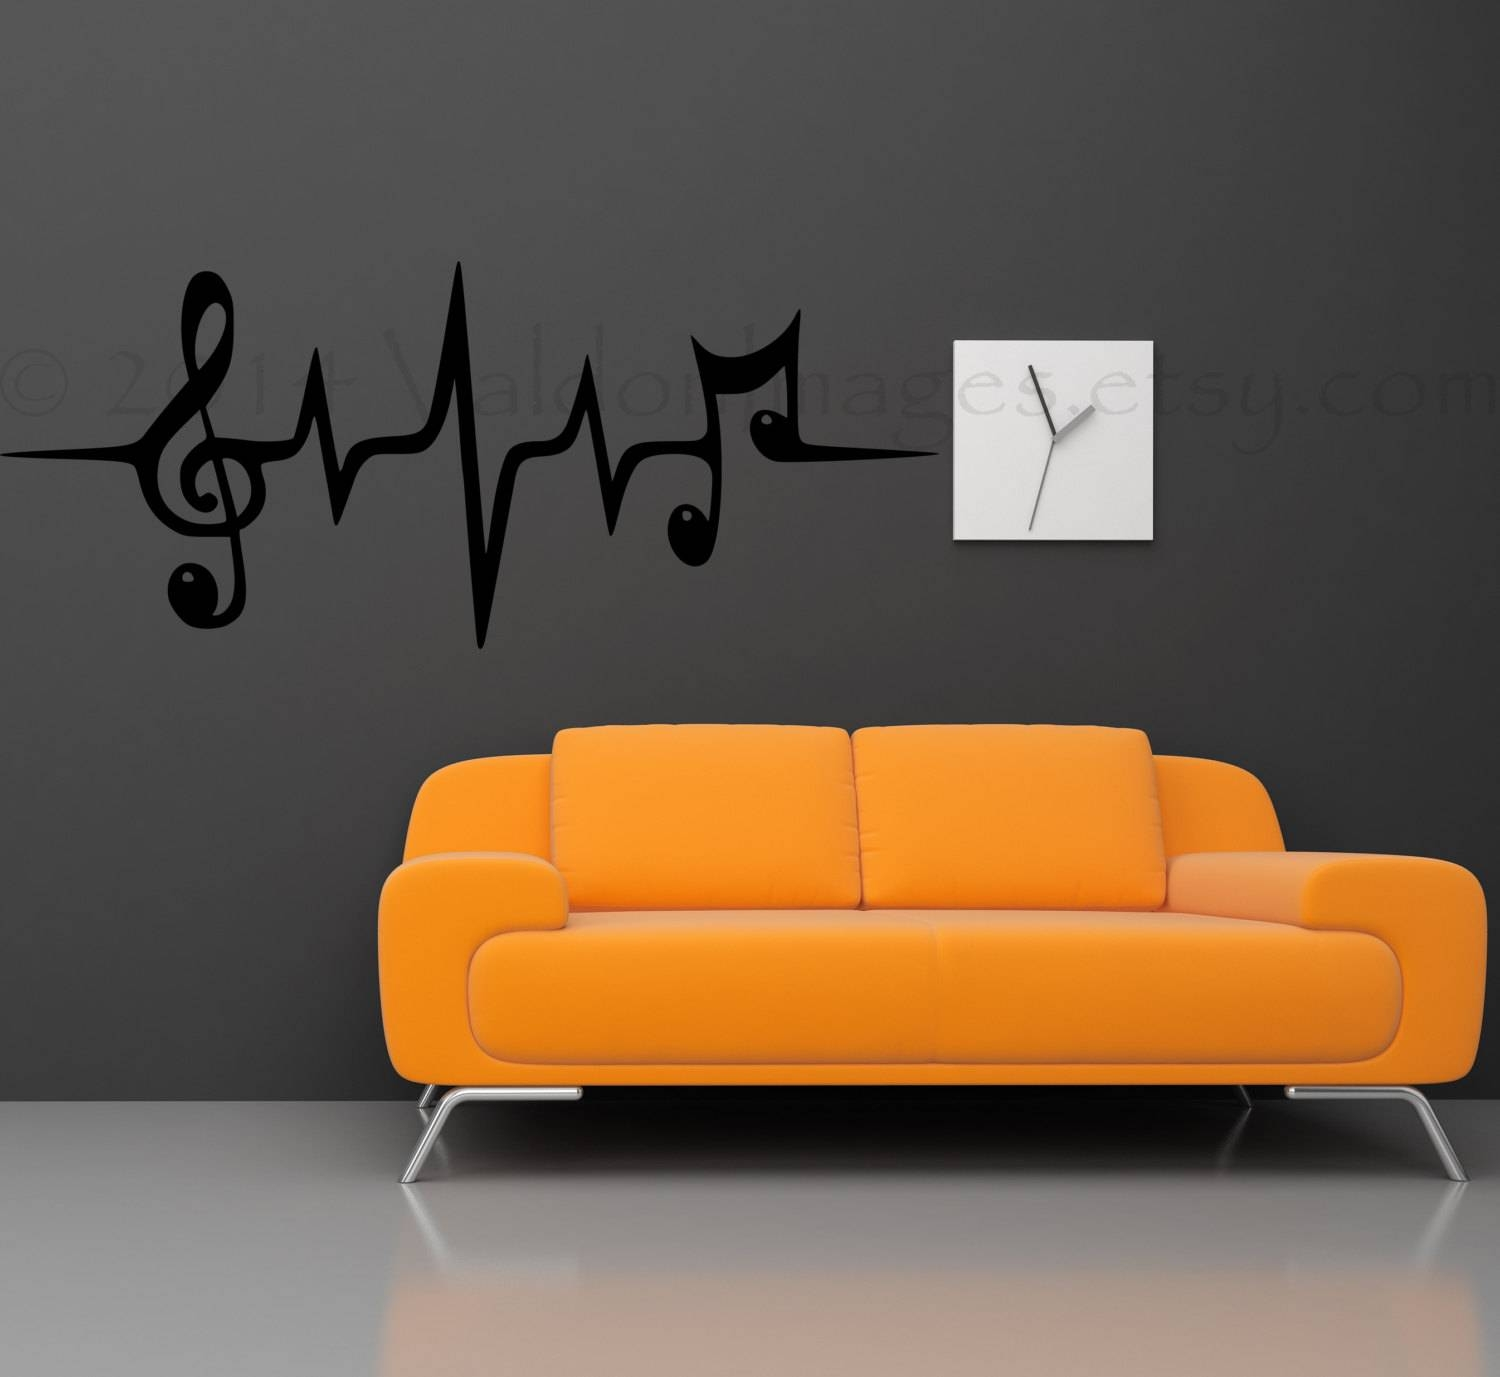 Music Note Wall Decal Music Wall Decal Heartbeat Wall For Most Recent Music Note Wall Art Decor (View 2 of 20)